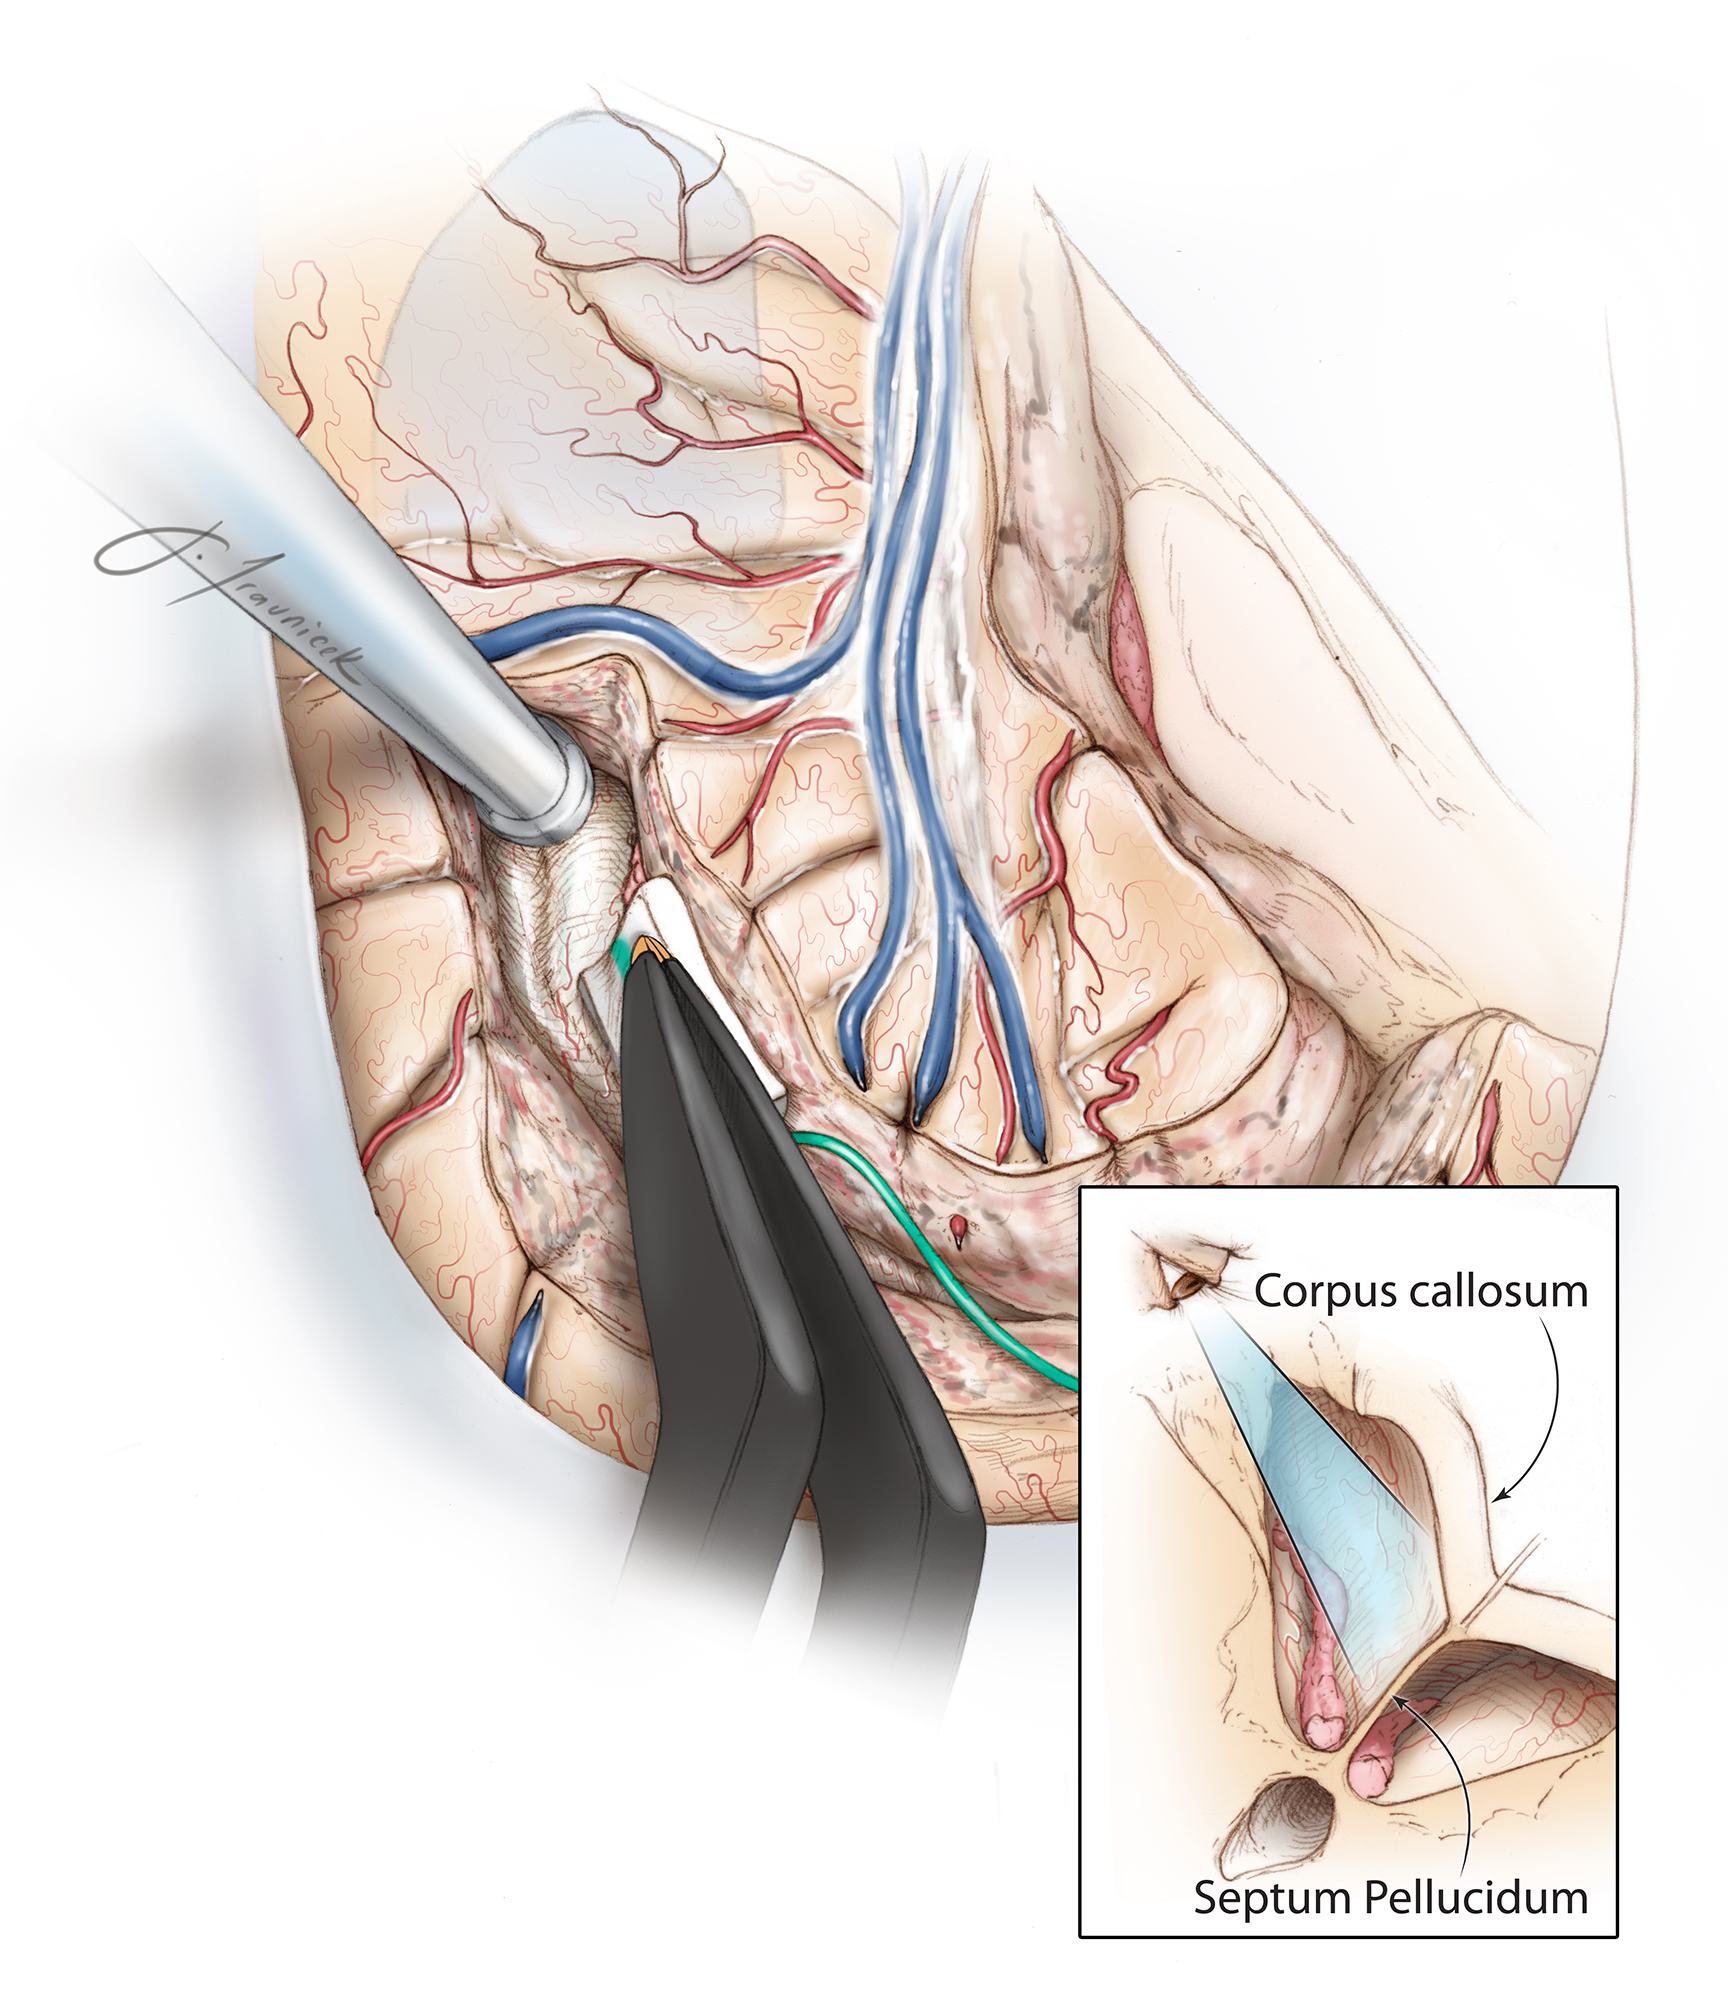 Figure 8: Next, the corticotomy is carried anteriorly with removal of portions of the postcentral, precentral, and inferior frontal gyri, thus exposing the body and frontal horn of the lateral ventricle. Note the viewing angle toward the junction of the septum pellucidum and corpus callosum (inset image). This angle is oblique and may be disorienting to the operator. Image guidance can assist with identification of the appropriate trajectory. Any injury to the contralateral hemisphere should obviously be avoided.